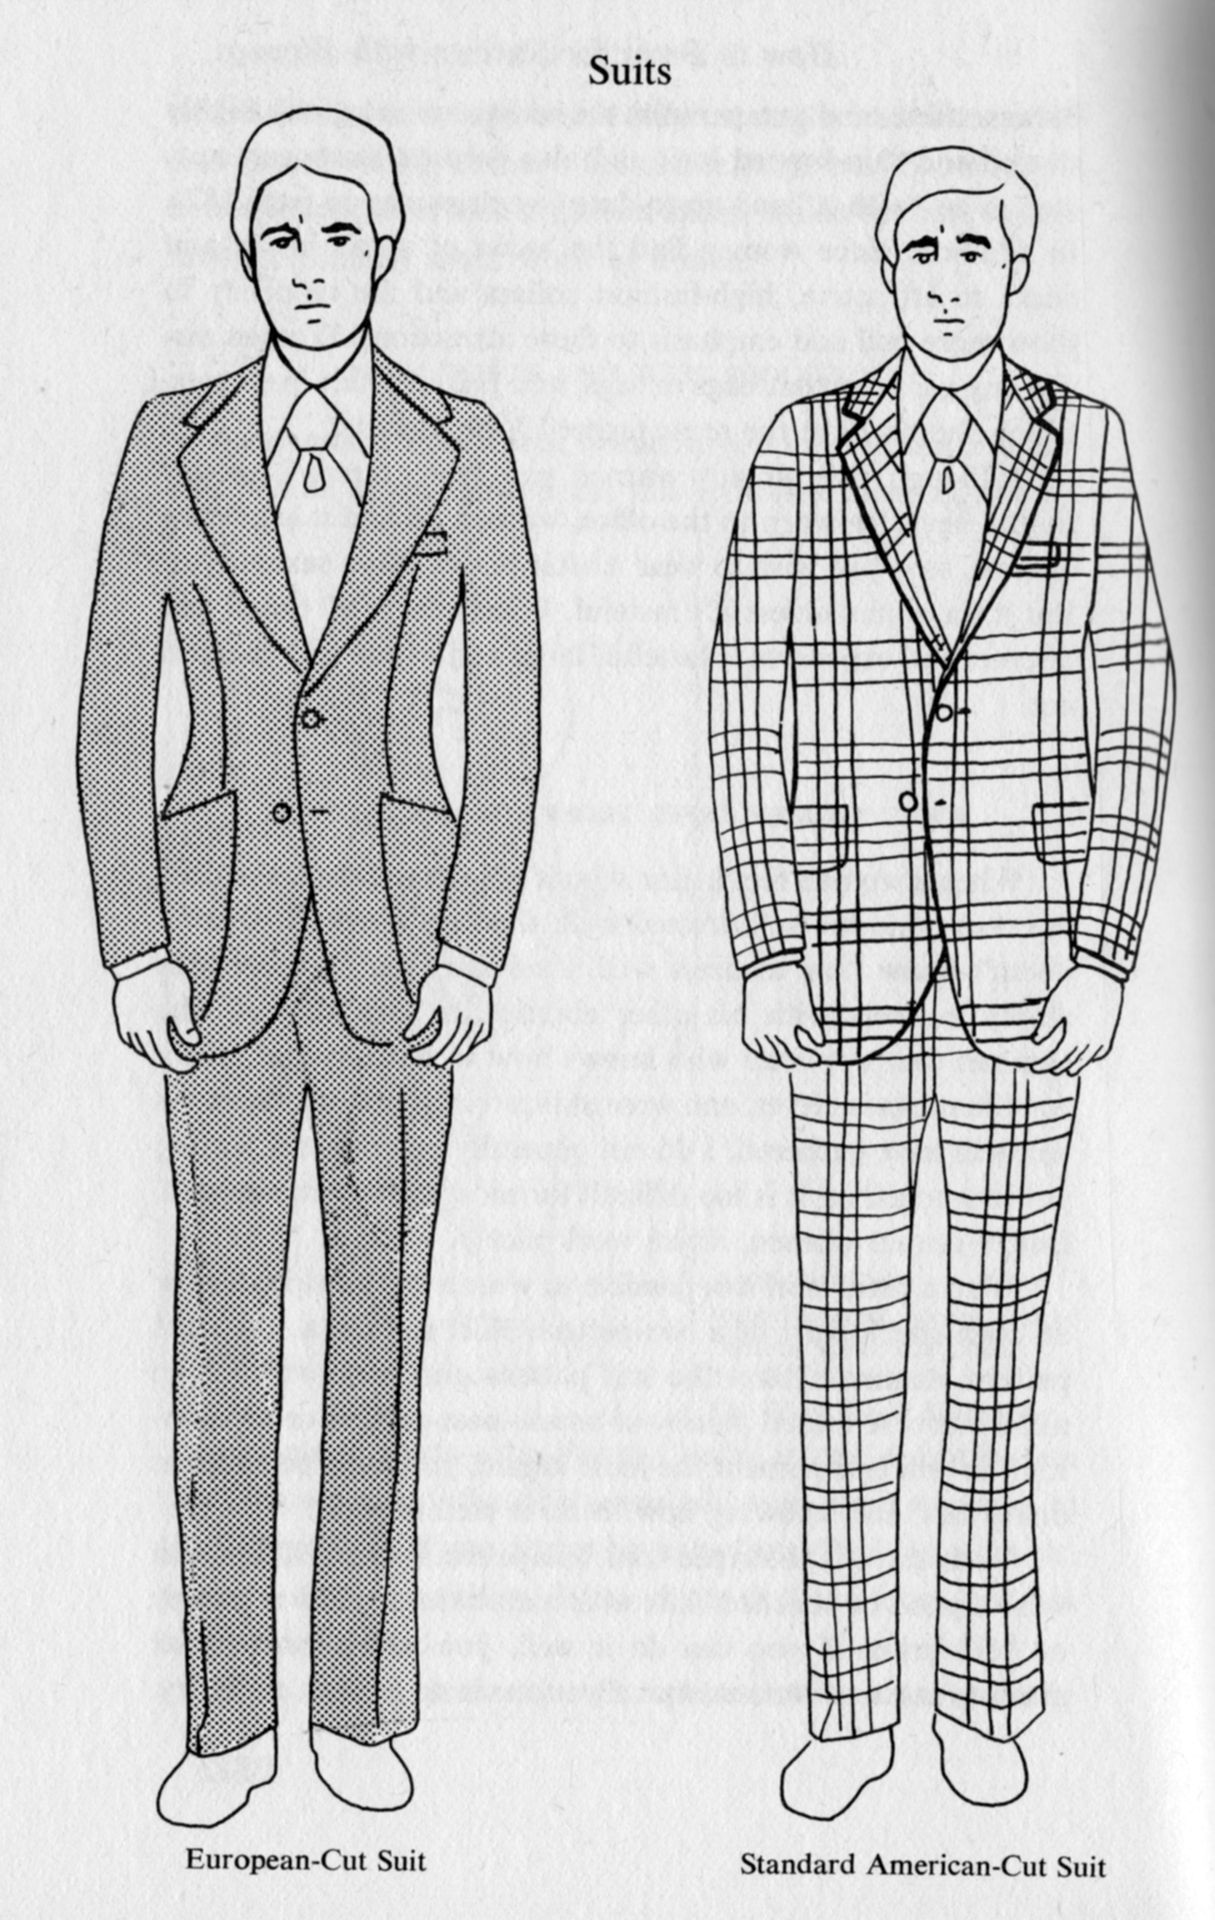 how to dress for success women most women prefer the 1975 how to dress for success women most women prefer the european cut